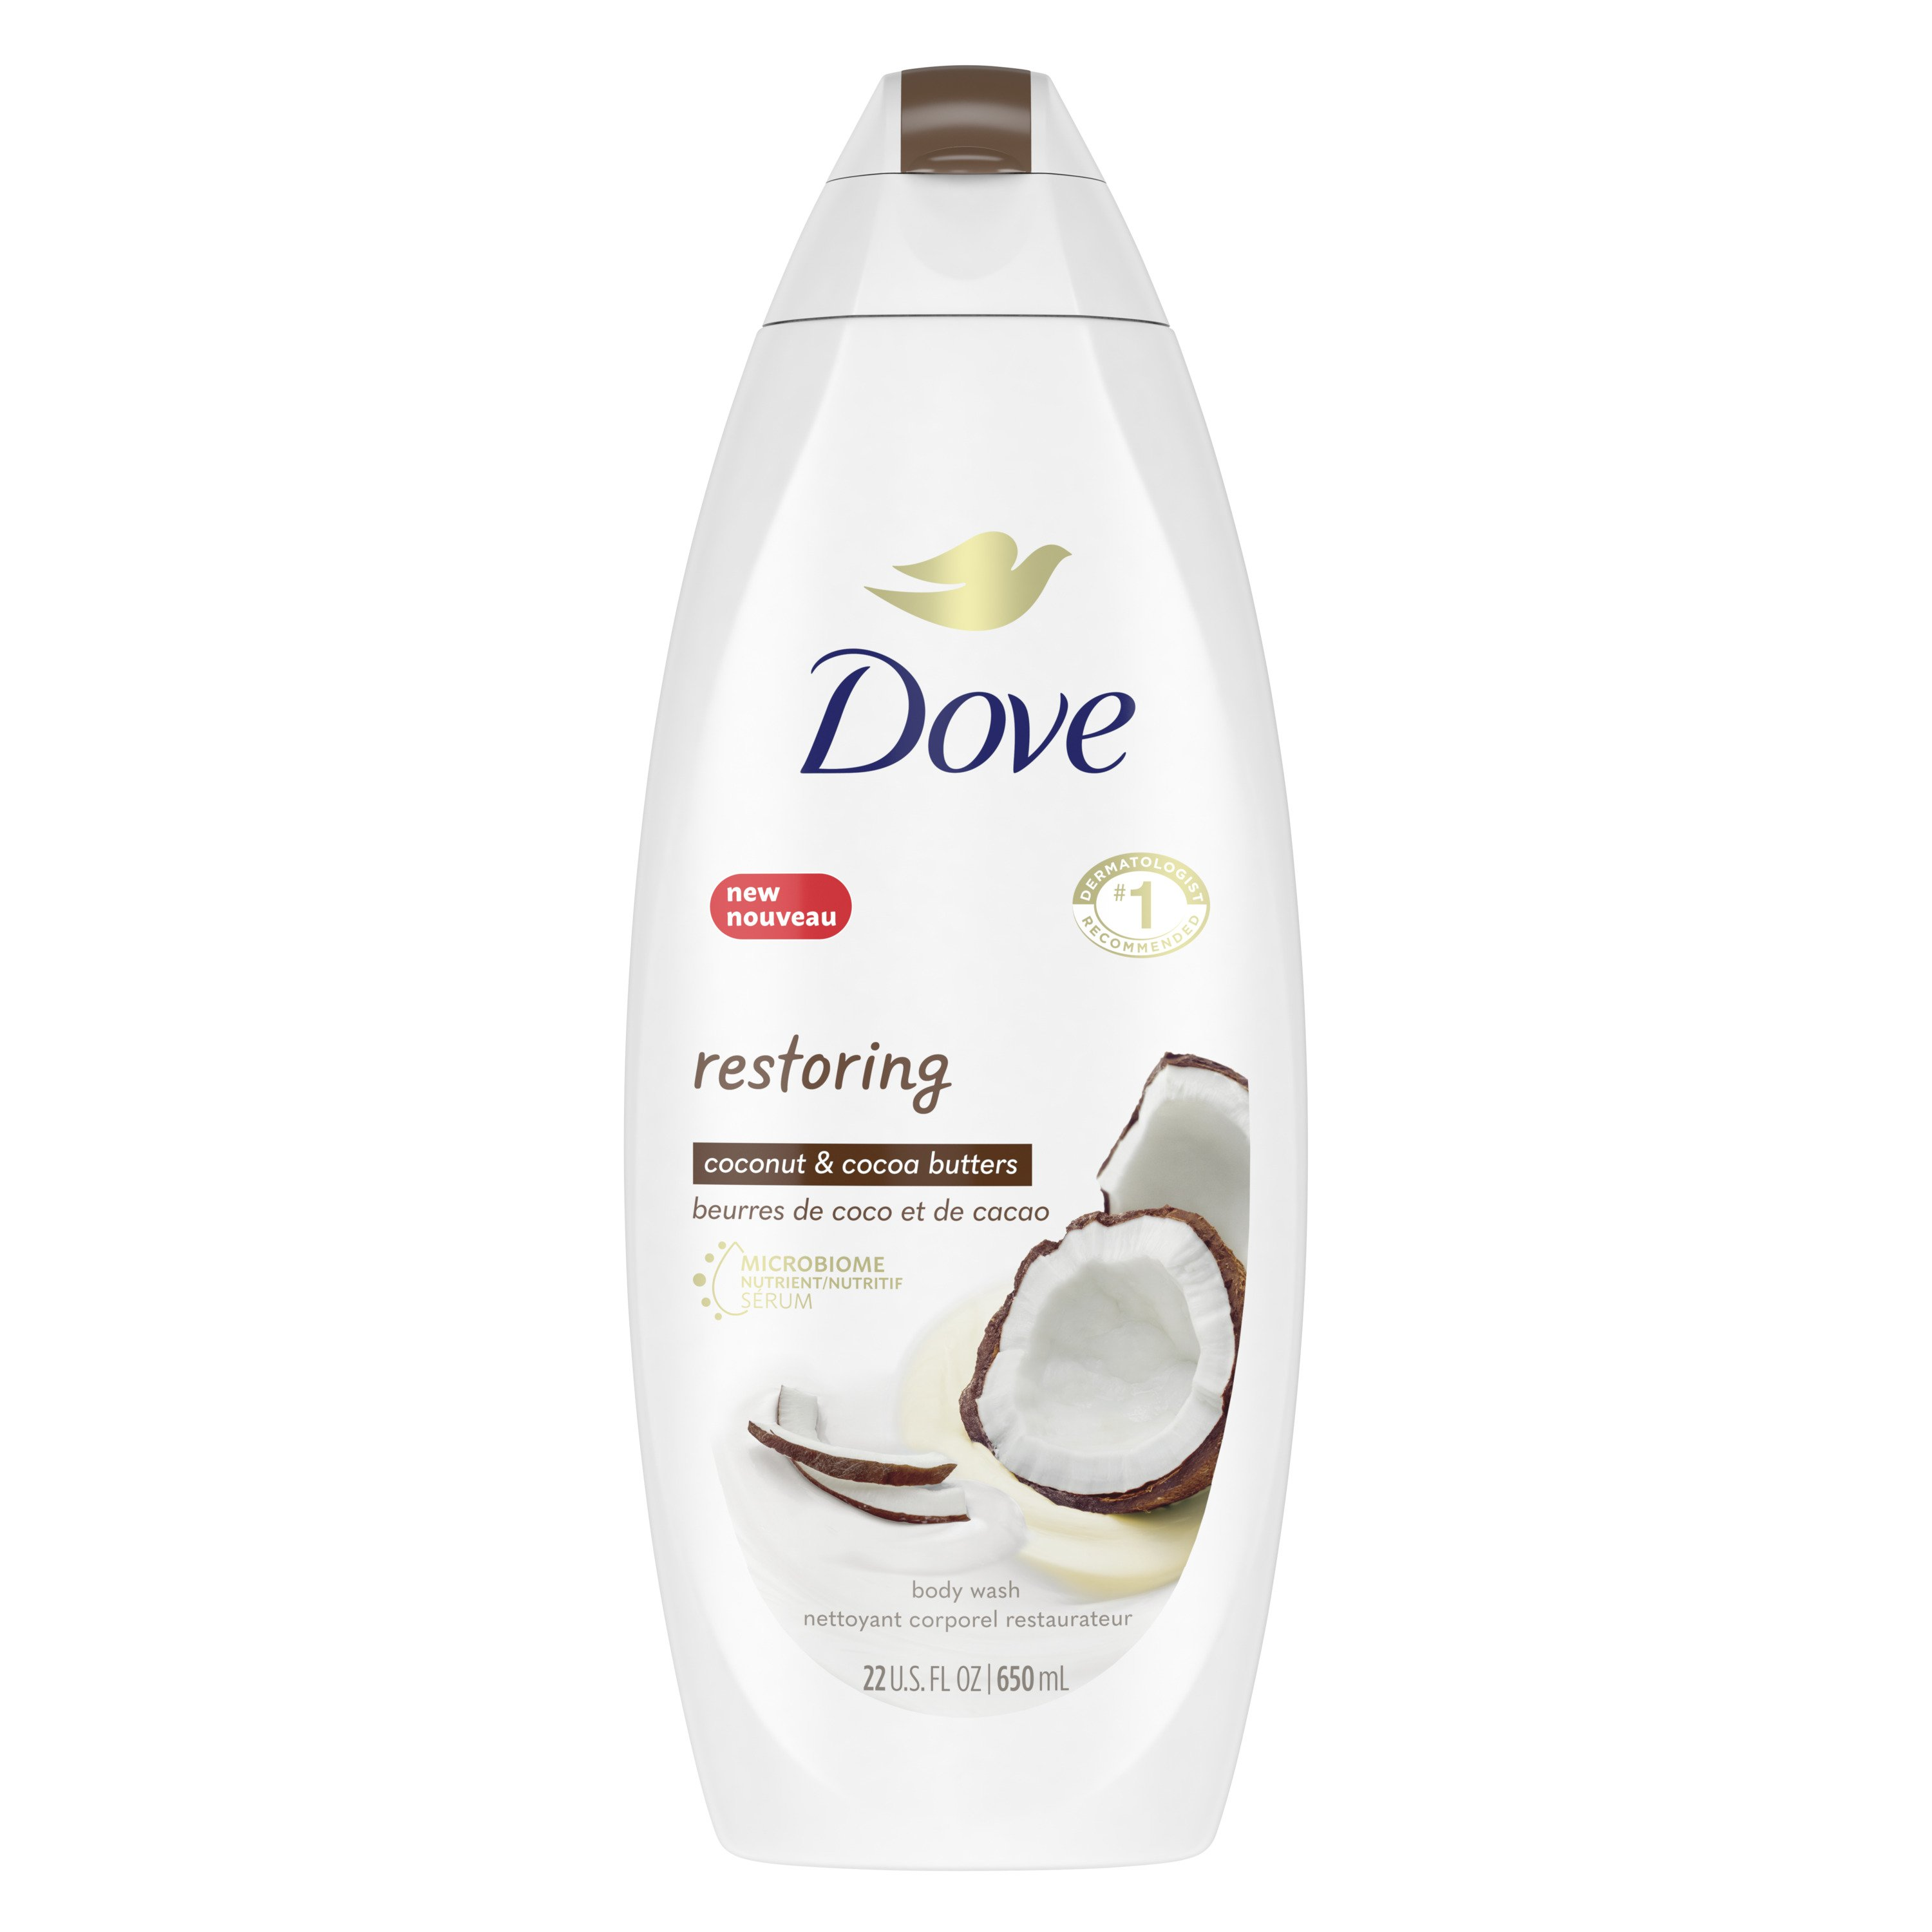 Dove Purely Pampering Coconut Milk With Jasmine Petals Body Wash Shop Body Wash At H E B